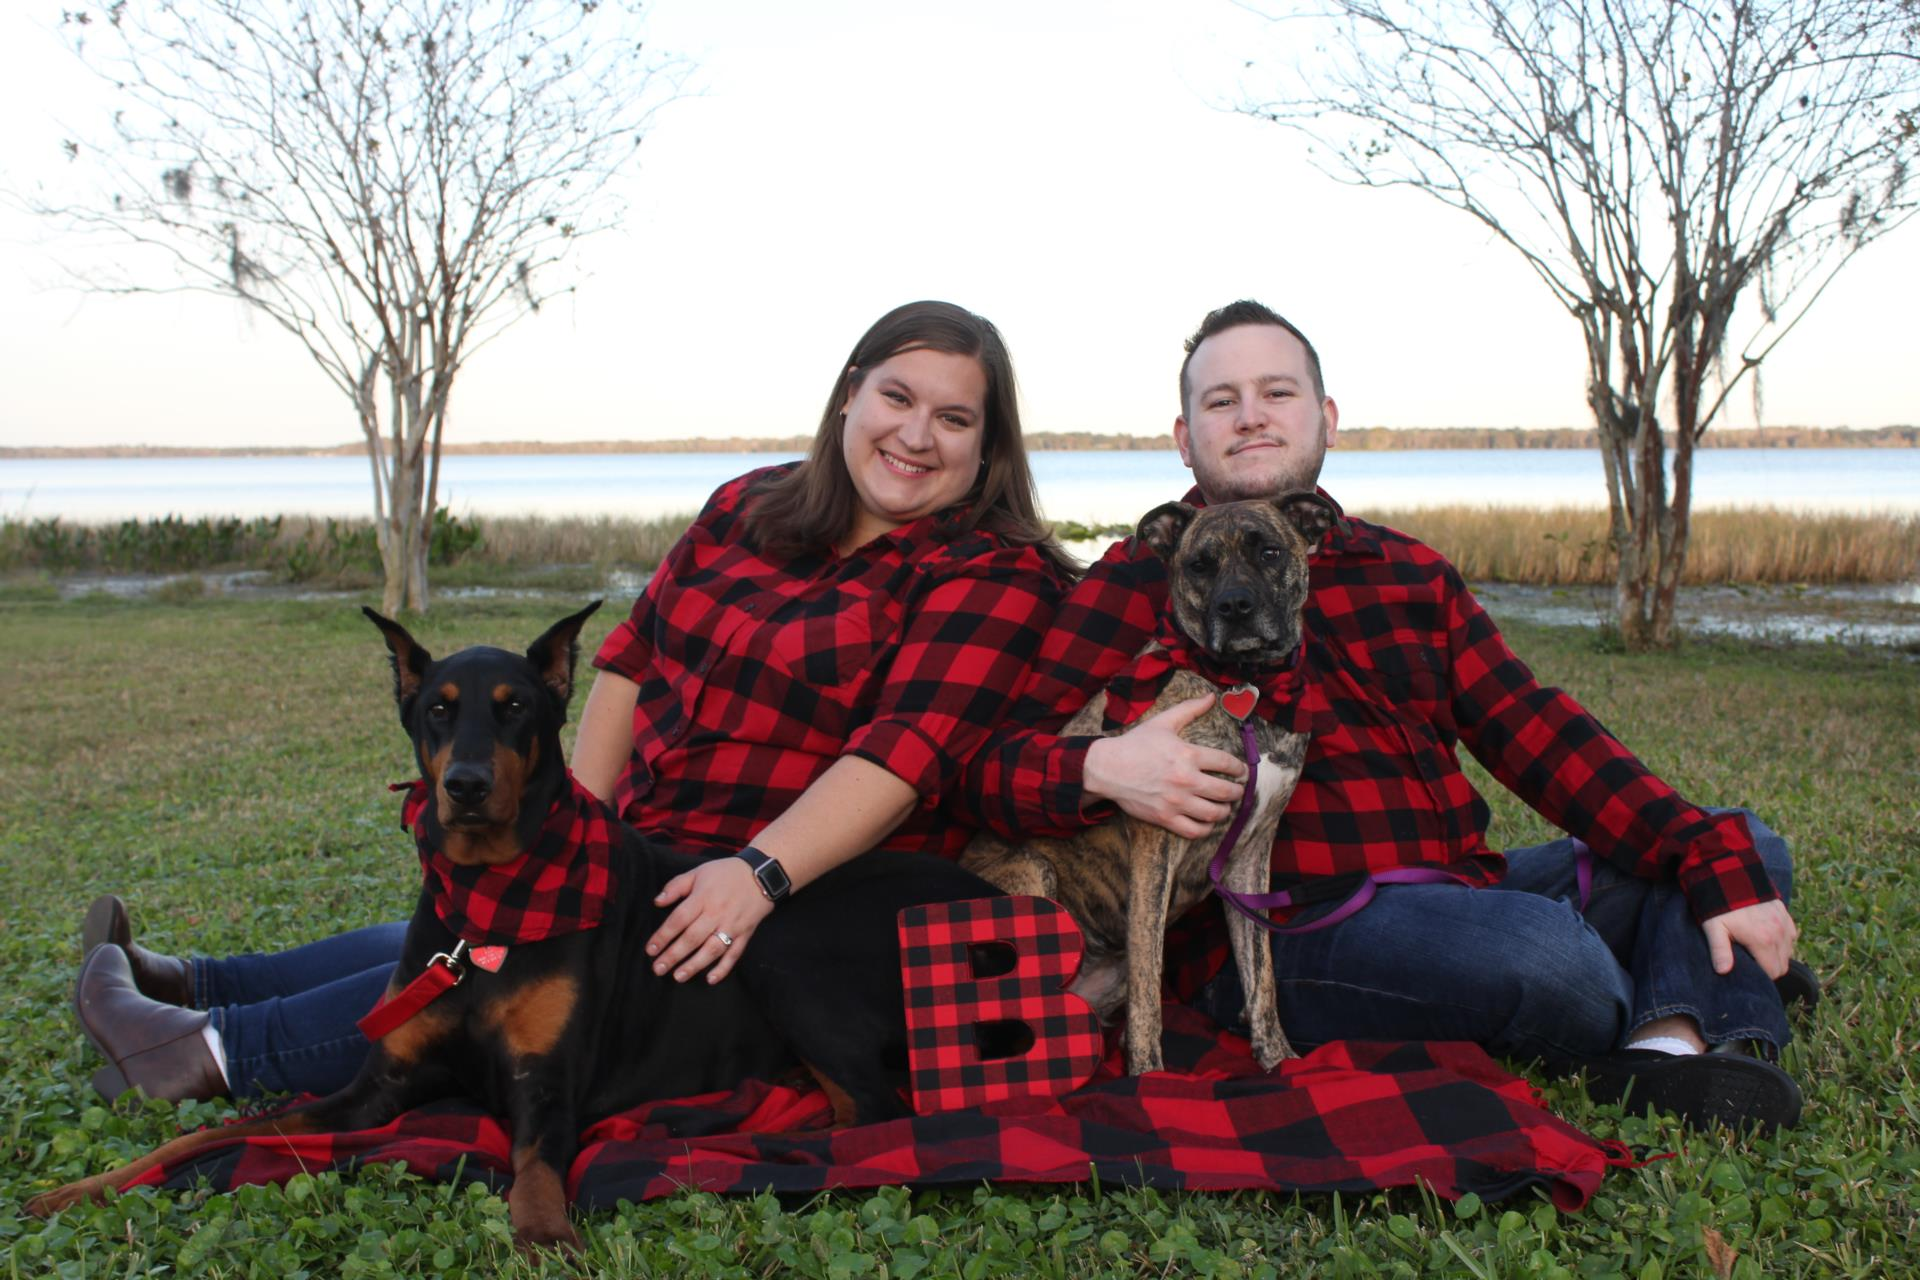 Mr. and Mrs. Bilsky with two dogs